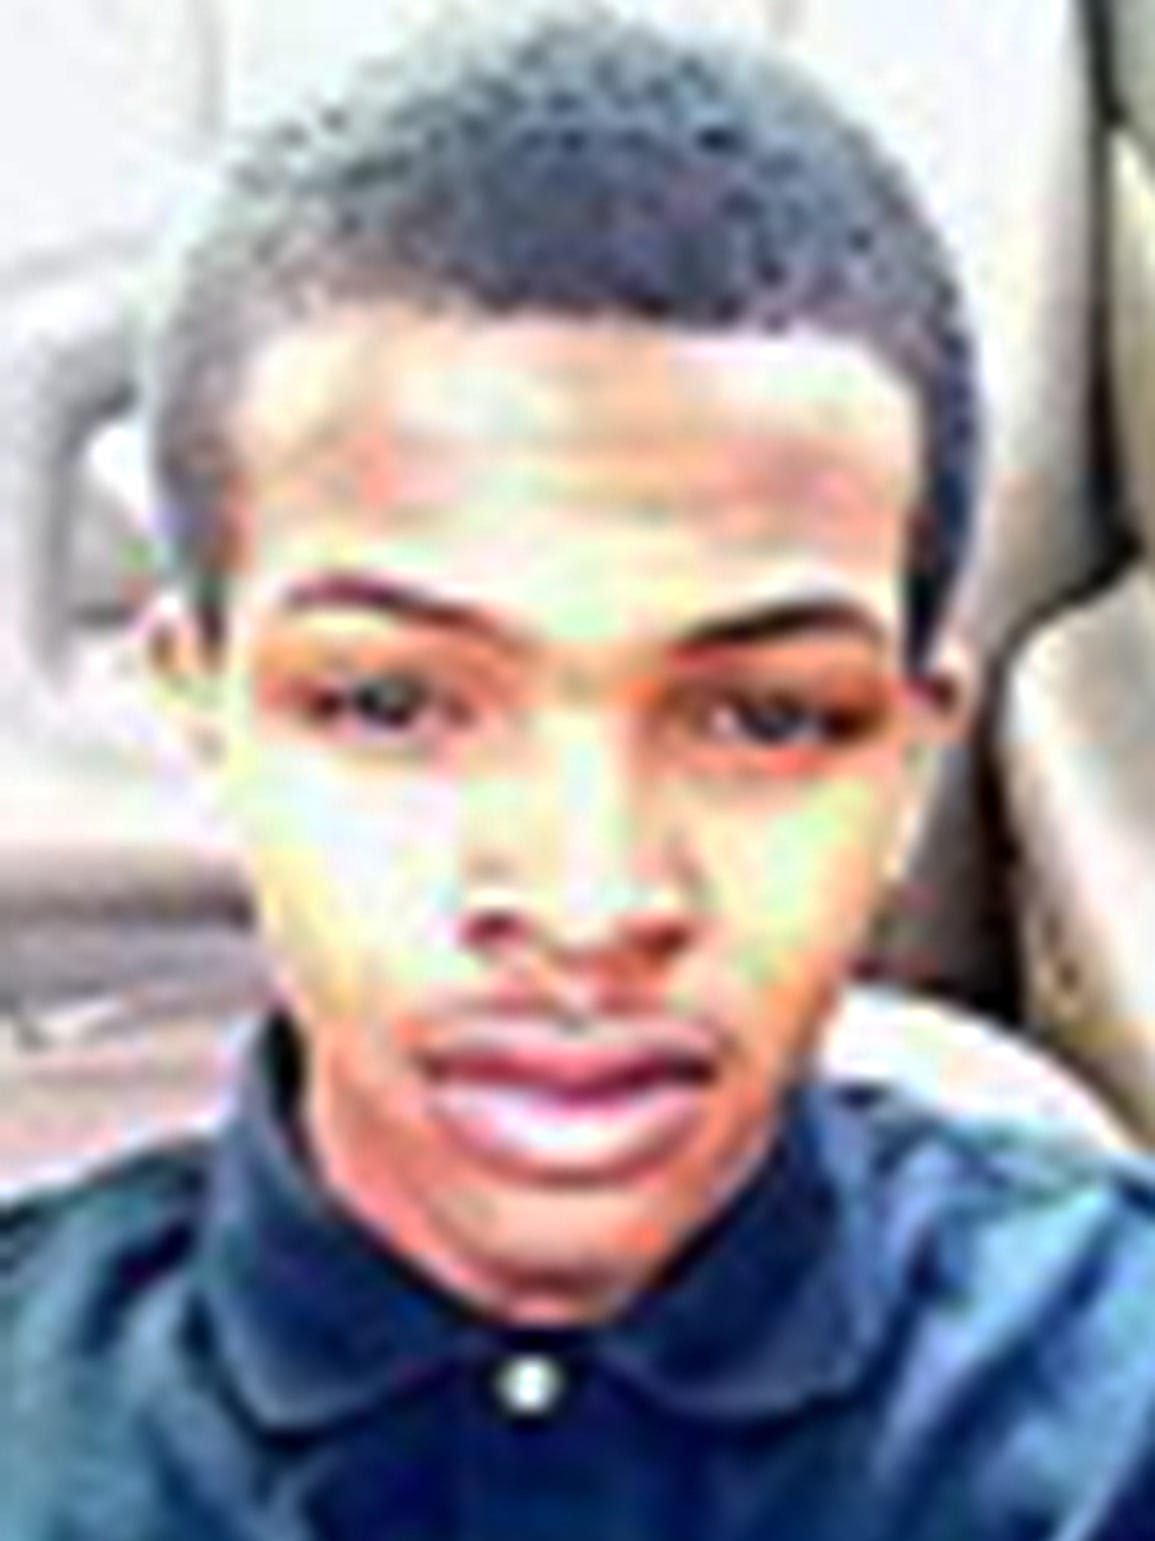 NaGus Lamar Griggs, 18, of York, died Sept. 8, 2014,